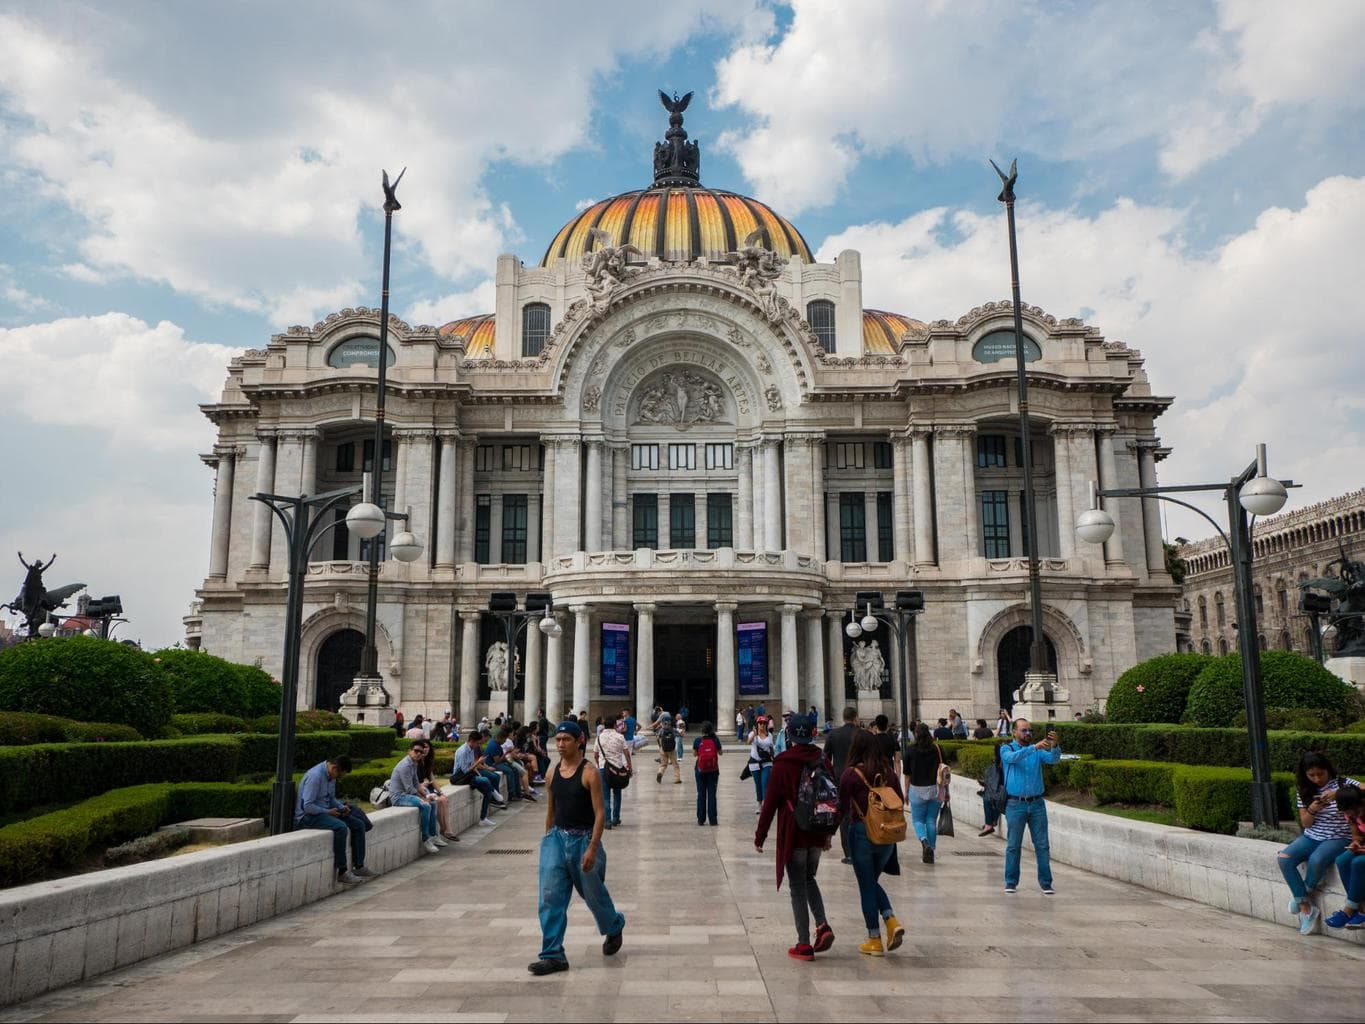 Facade of the Palacio Bellas Artes in Mexico City